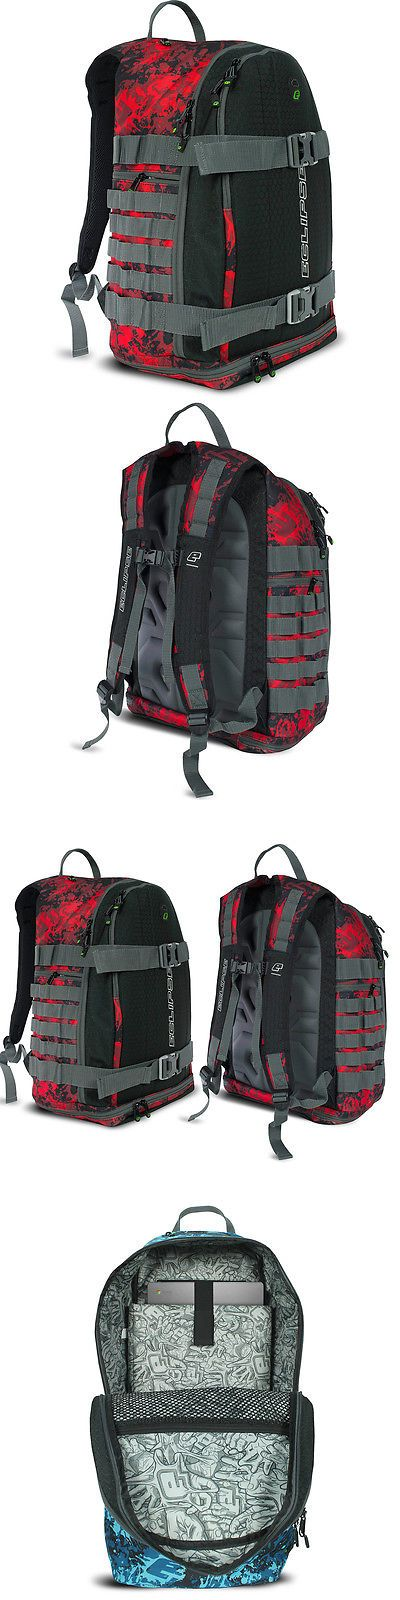 Equipment Bags and Cases 64672: Planet Eclipse Gx Gravel Bag - Back Pack - Fire -> BUY IT NOW ONLY: $79.95 on eBay!